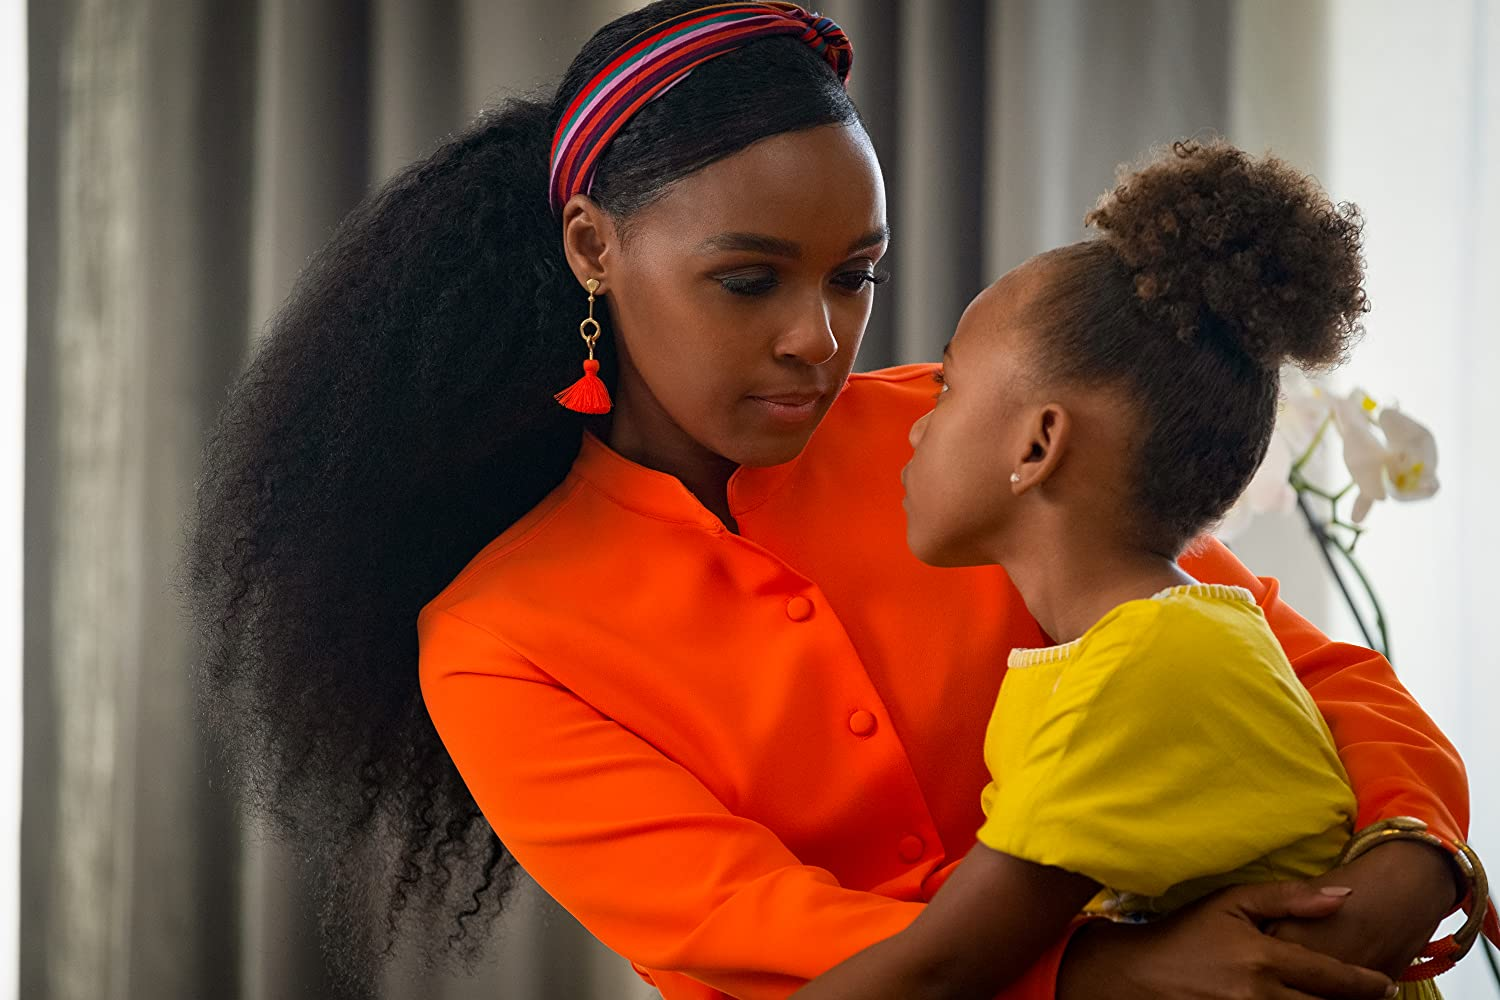 London Boyce and Janelle Monáe in Antebellum (2020)